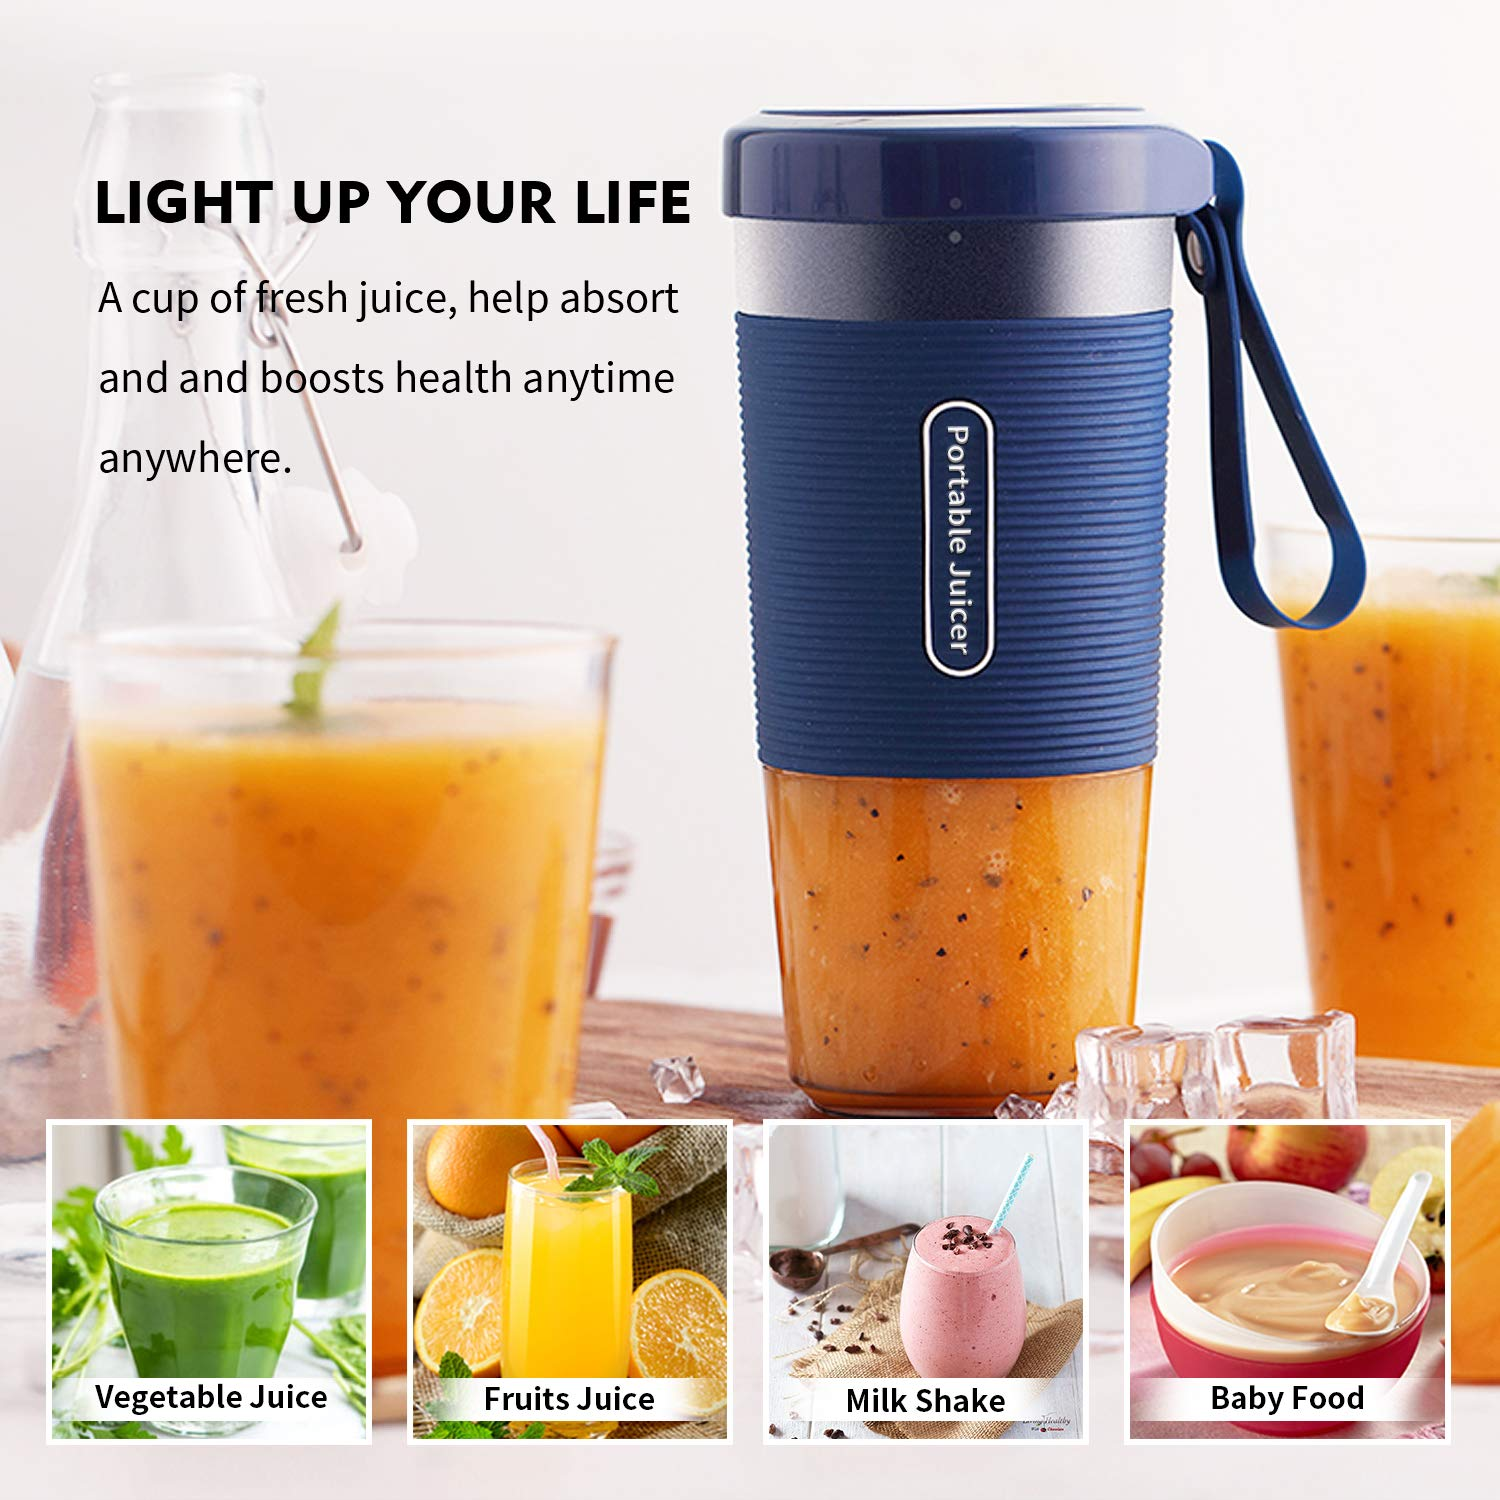 Portable Blender,DOUHE Cordless Mini Personal Blender Small Smoothie Blender USB Fruit Juicer Mixer -Home Outdoor Travel Office - USB Rechargeable,IP68 Waterproof,BPA Free by DOUHE (Image #4)